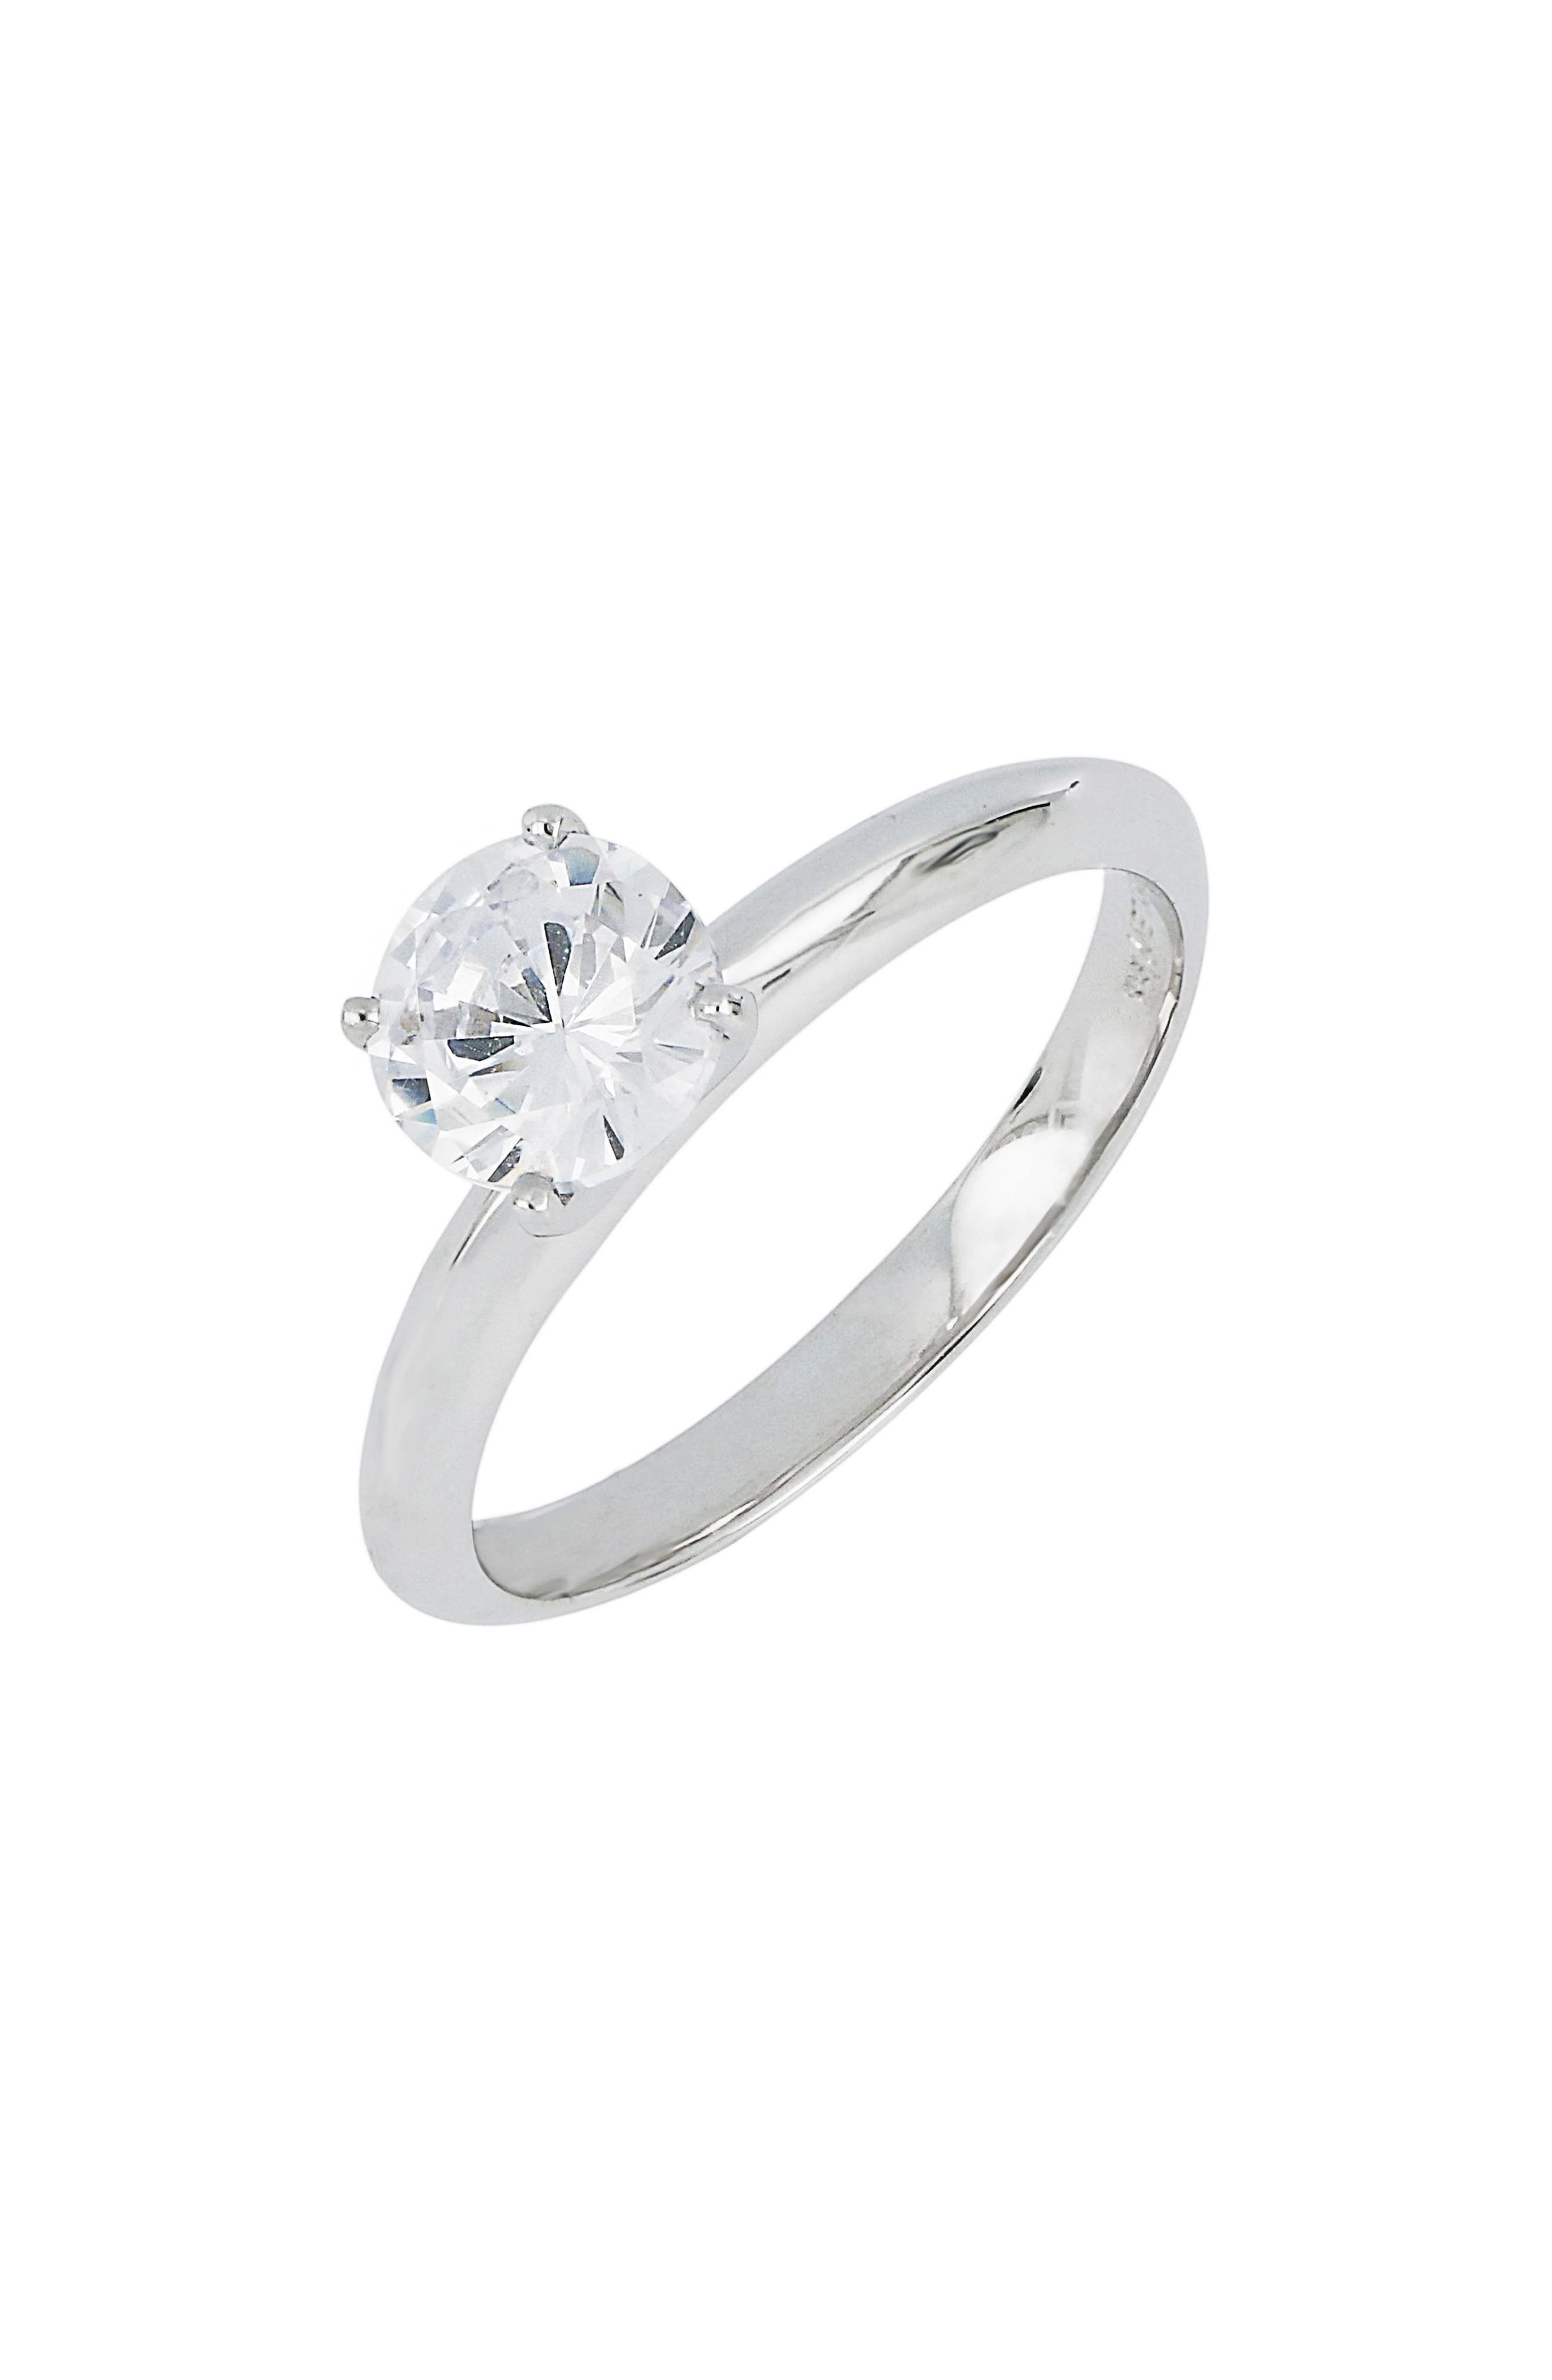 Solitaire Engagement Ring Setting (Nordstrom Exclusive)